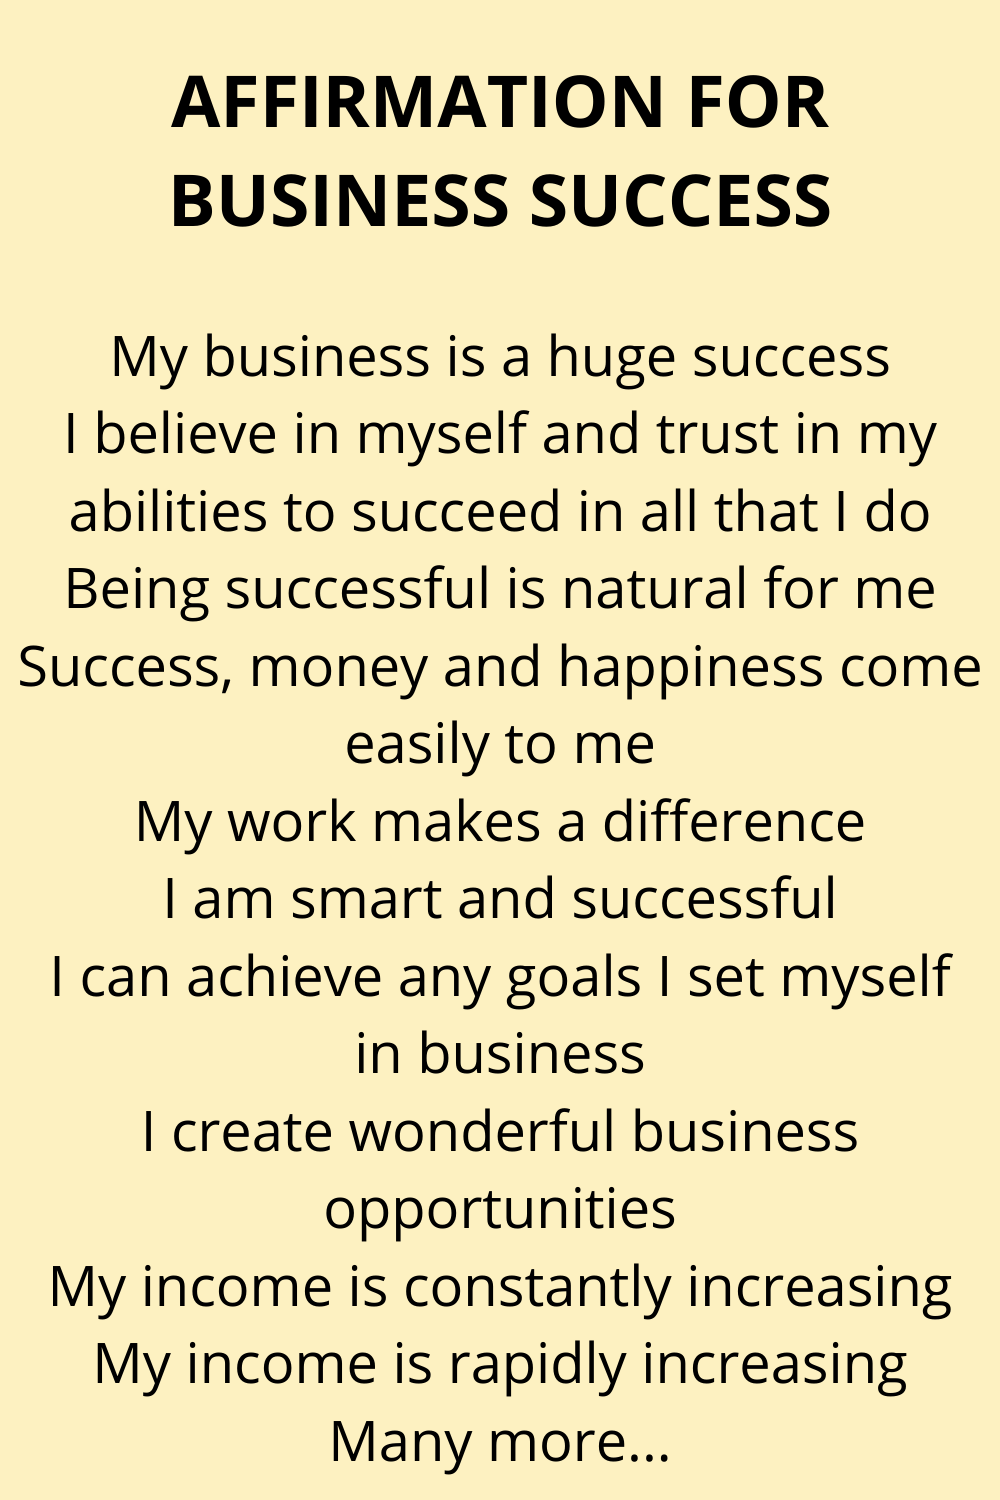 A fantastic, empowering collection of affirmations for business success.  These affirmations help you to create a positive mindset to help you build the business you want.  My business is a huge success I believe in myself and trust in my abilities to succeed in all that I do Being successful is natural for me Success, money and happiness come easily to me My work makes a difference I am smart and successful Plus many more. #Affirmations #Business